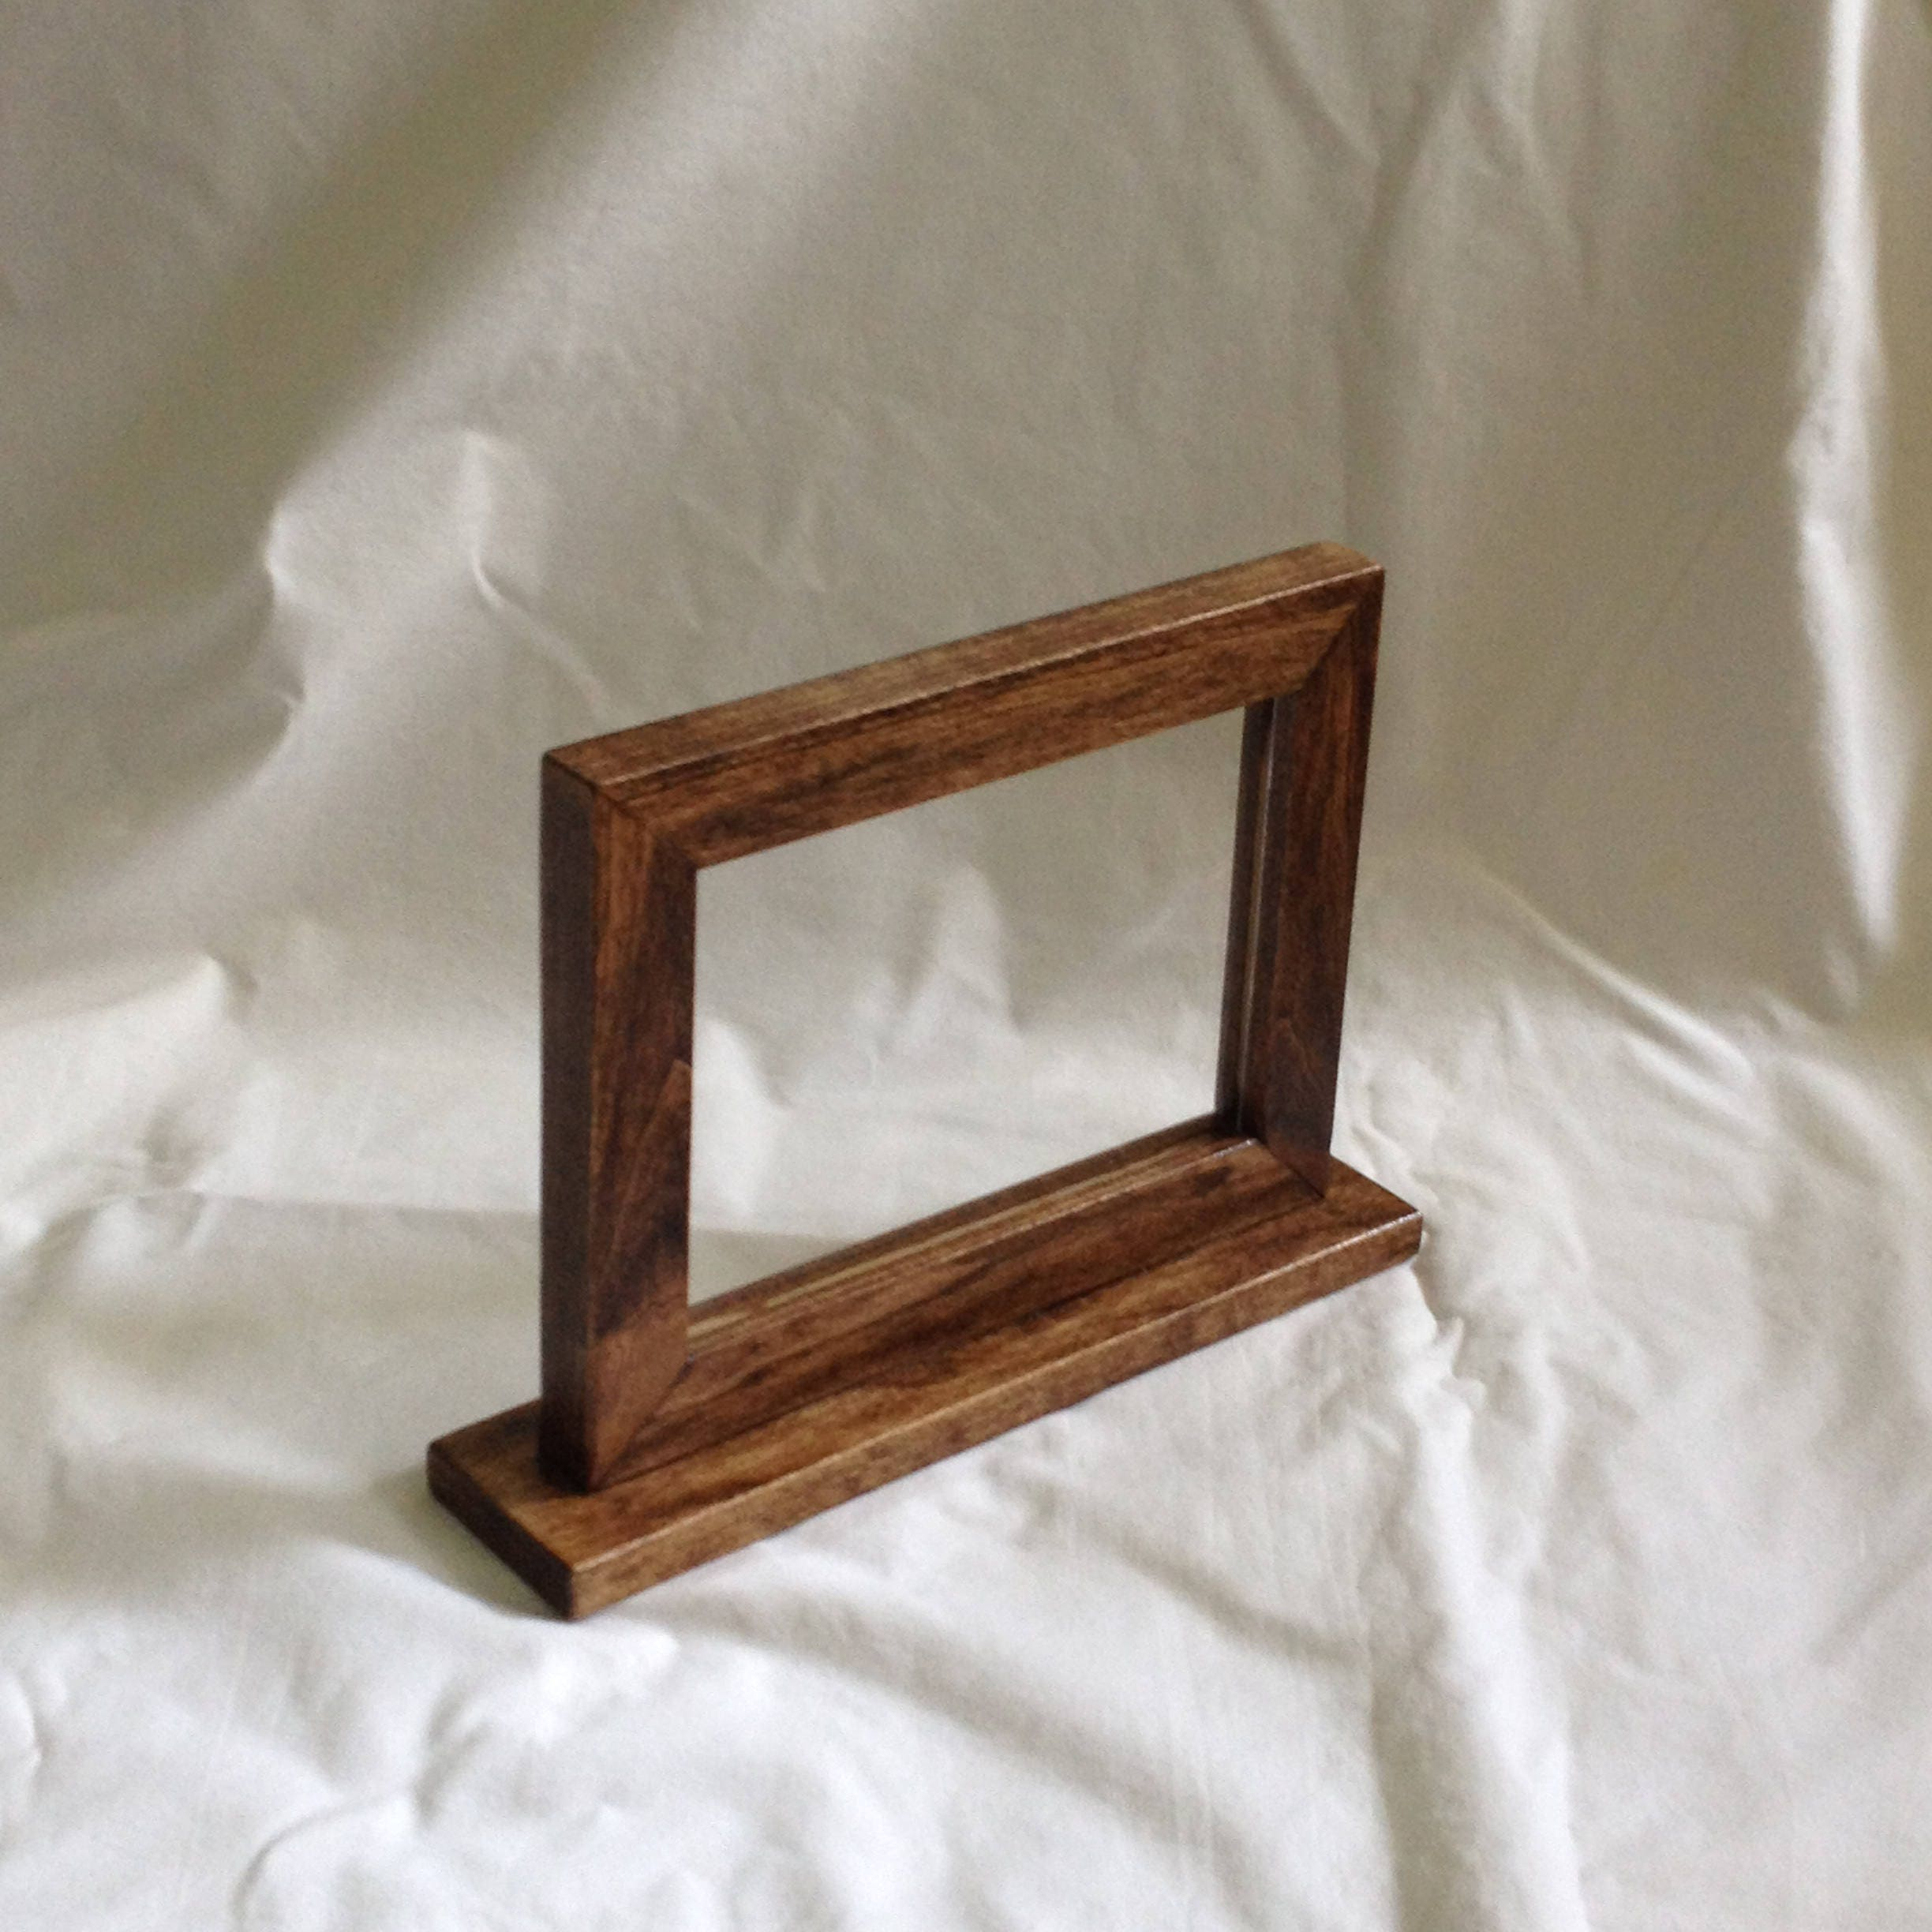 Double Sided Frame, Two Sided Frame, 2 Sided Frame, Double Sided ...